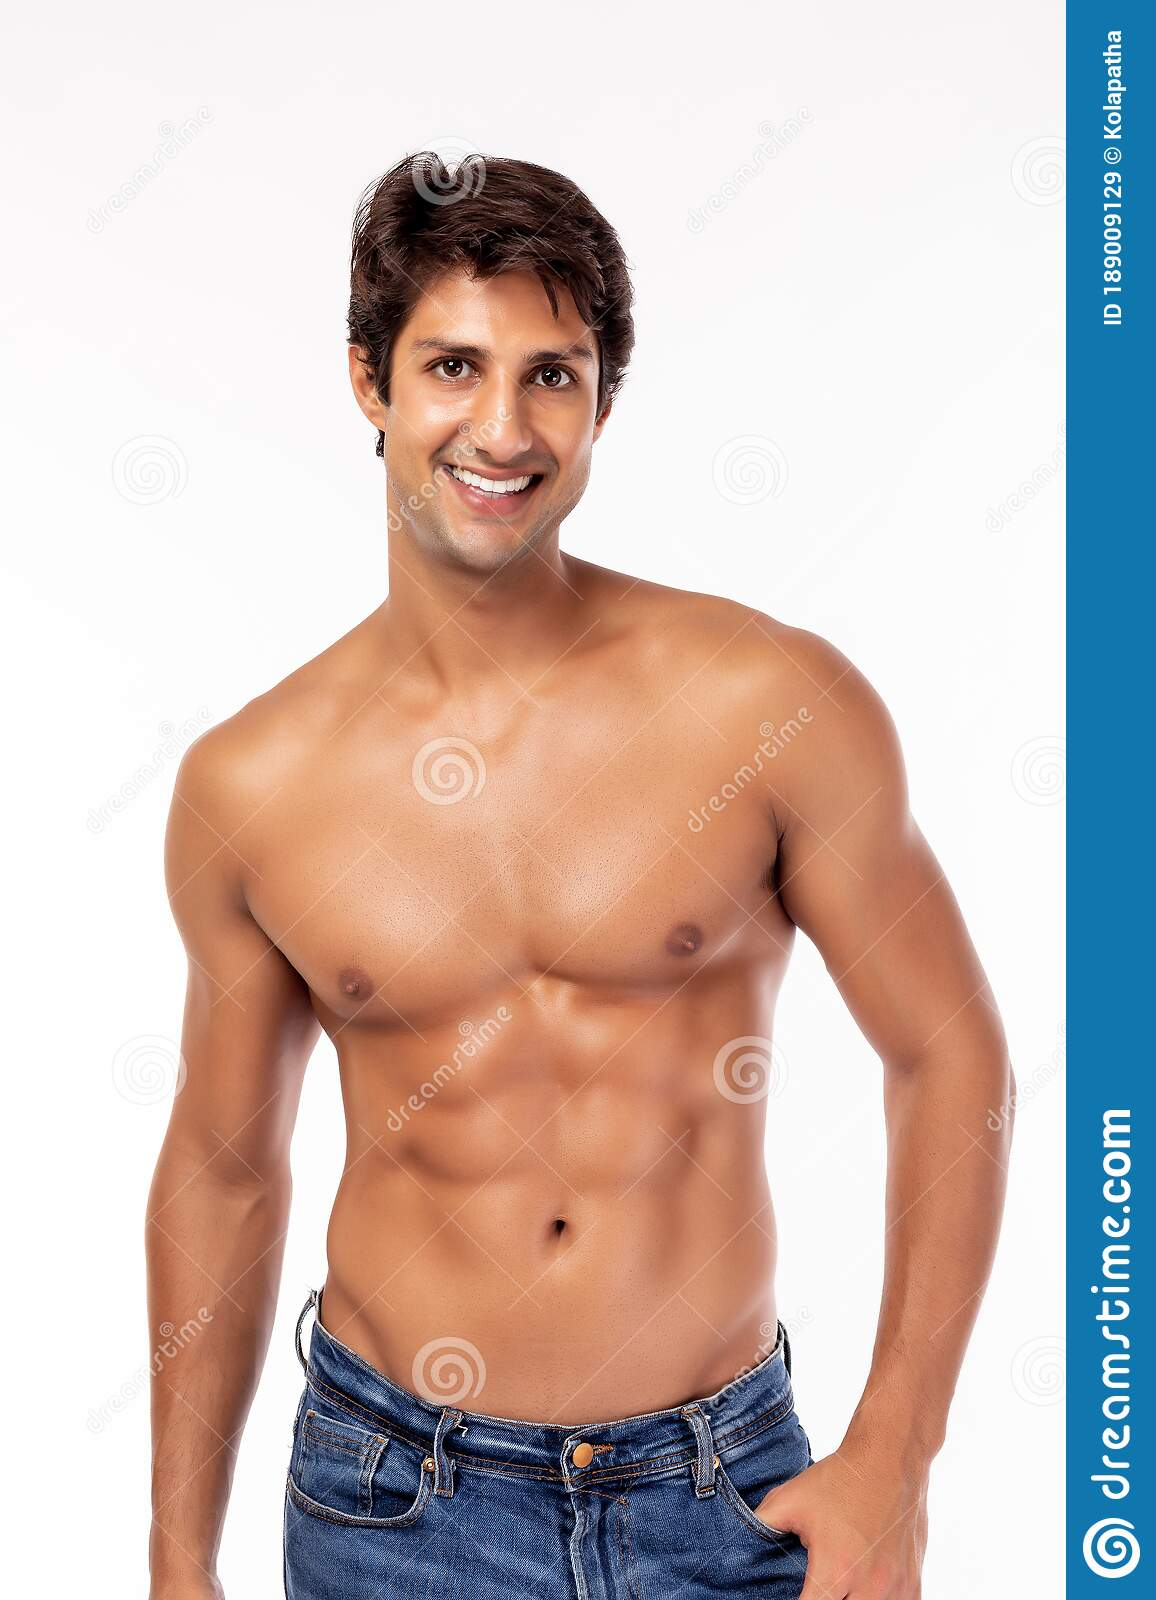 Body perfect guy The Perfect